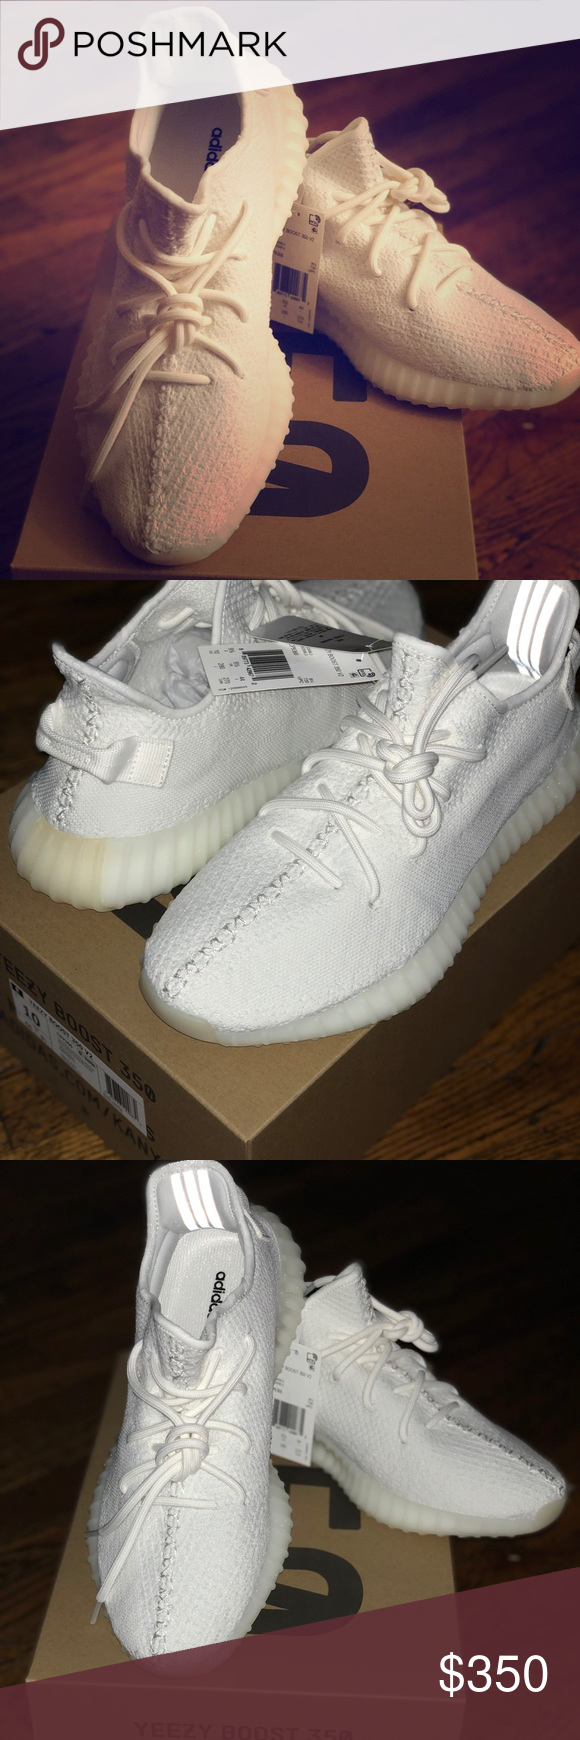 19ab35be23ff6b Adidas Yeezy Boost 350 V2  Triple White  Sz.10 BRAND NEW DEADSTOCK SIZE